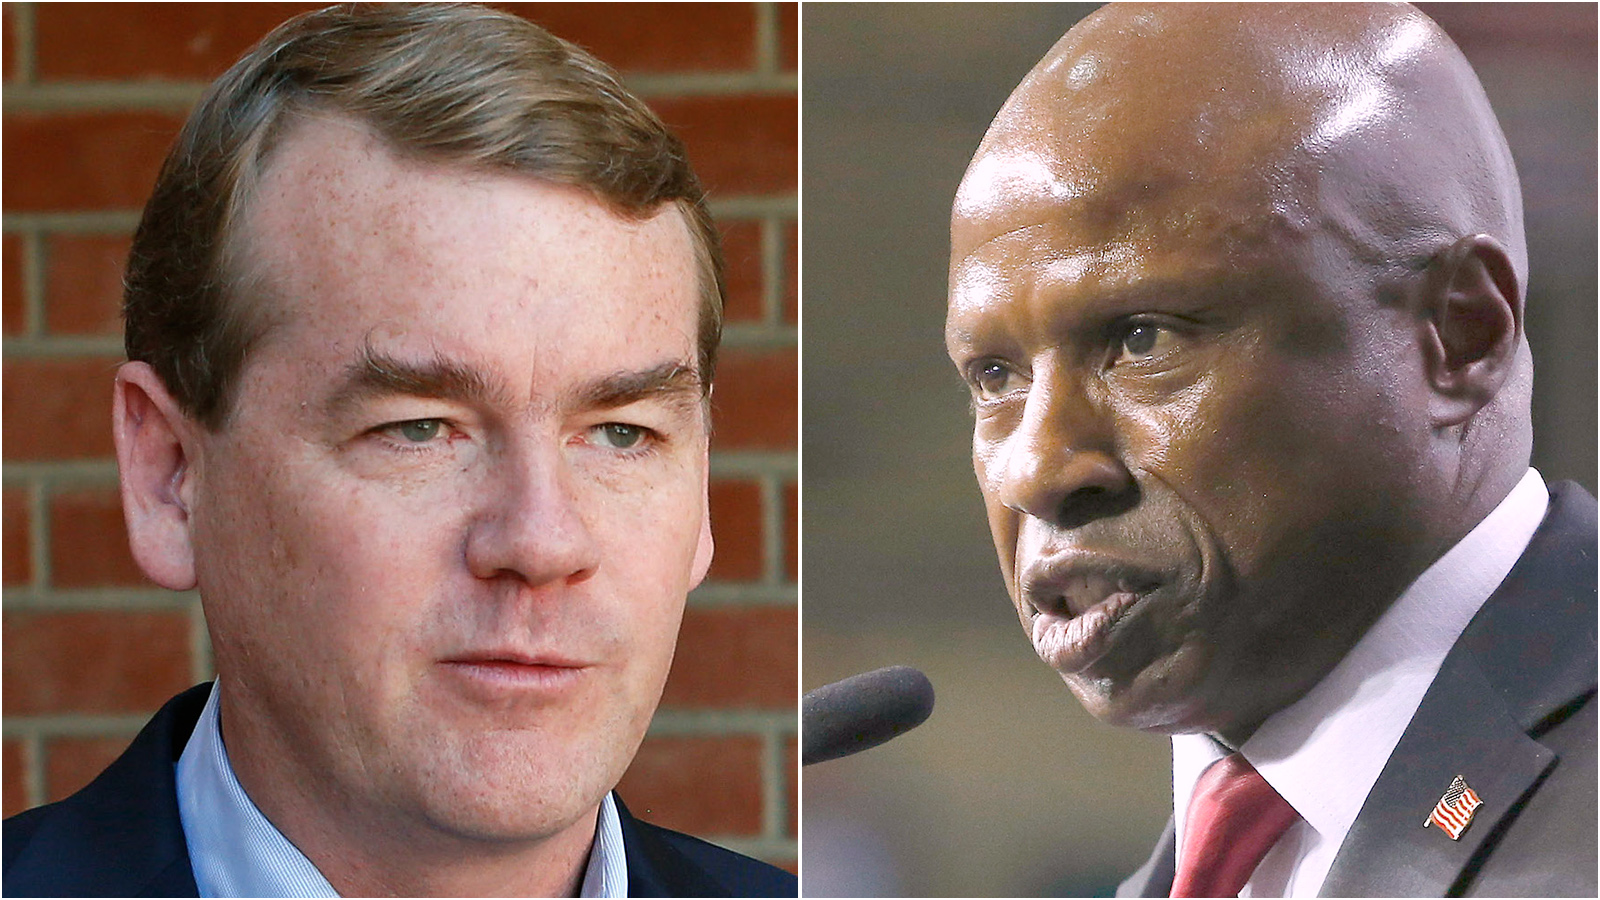 <p>Incumbent Democratic U.S. Sen. Michael Bennet, left, will face Republican challenger Darryl Glenn, right, in this fall's election.</p>